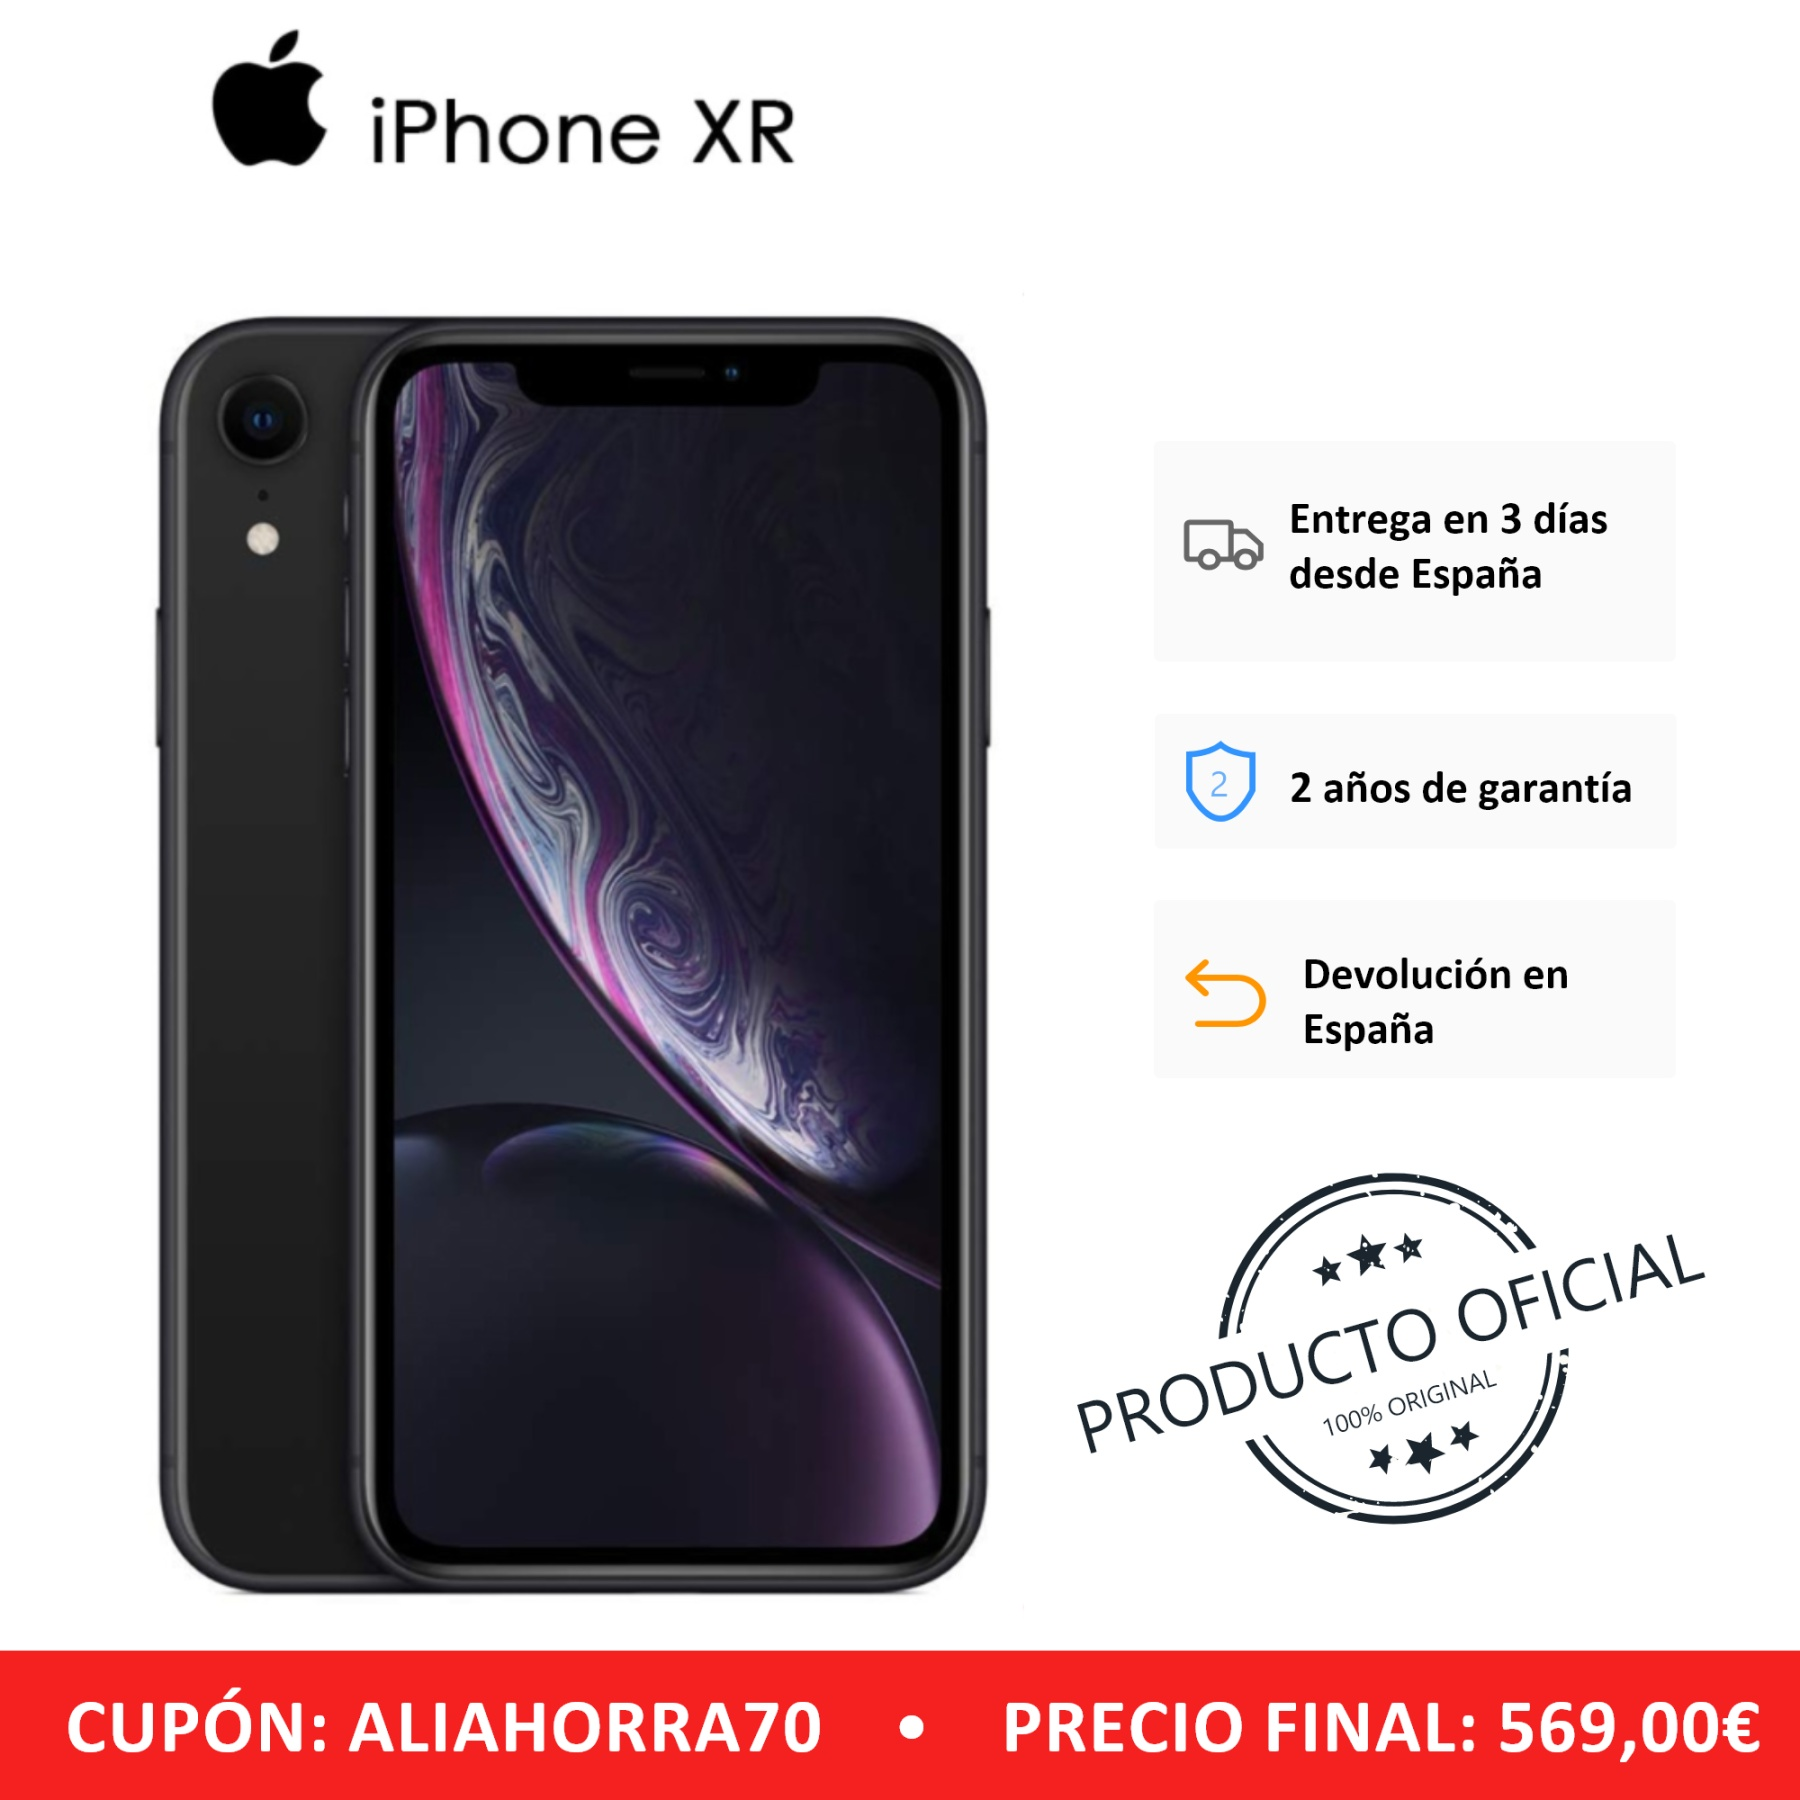 "Smartphone Apple IPhone XR, 64 GB, 3 GB RAM, Band 4G/LTE/Wi-Fi, 15,5 Cm (Pantalla 6.1 ""), Color Negro, Versión Española"